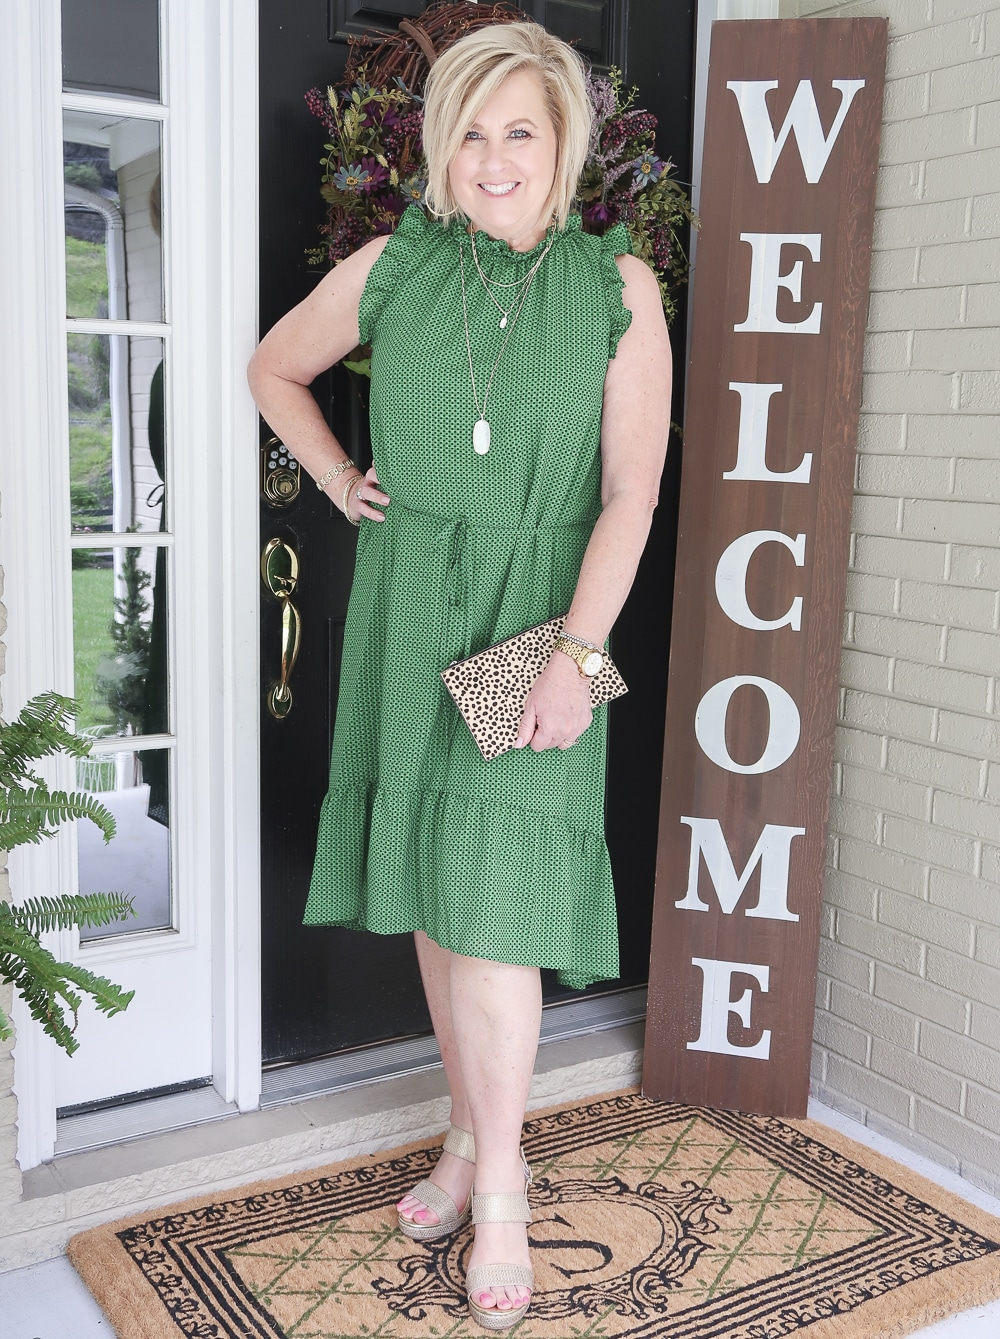 Fashion Blogger 50 Is Not Old is wearing a green polka dotted dress that has a high neck and ruffles plus gold wedge shoes